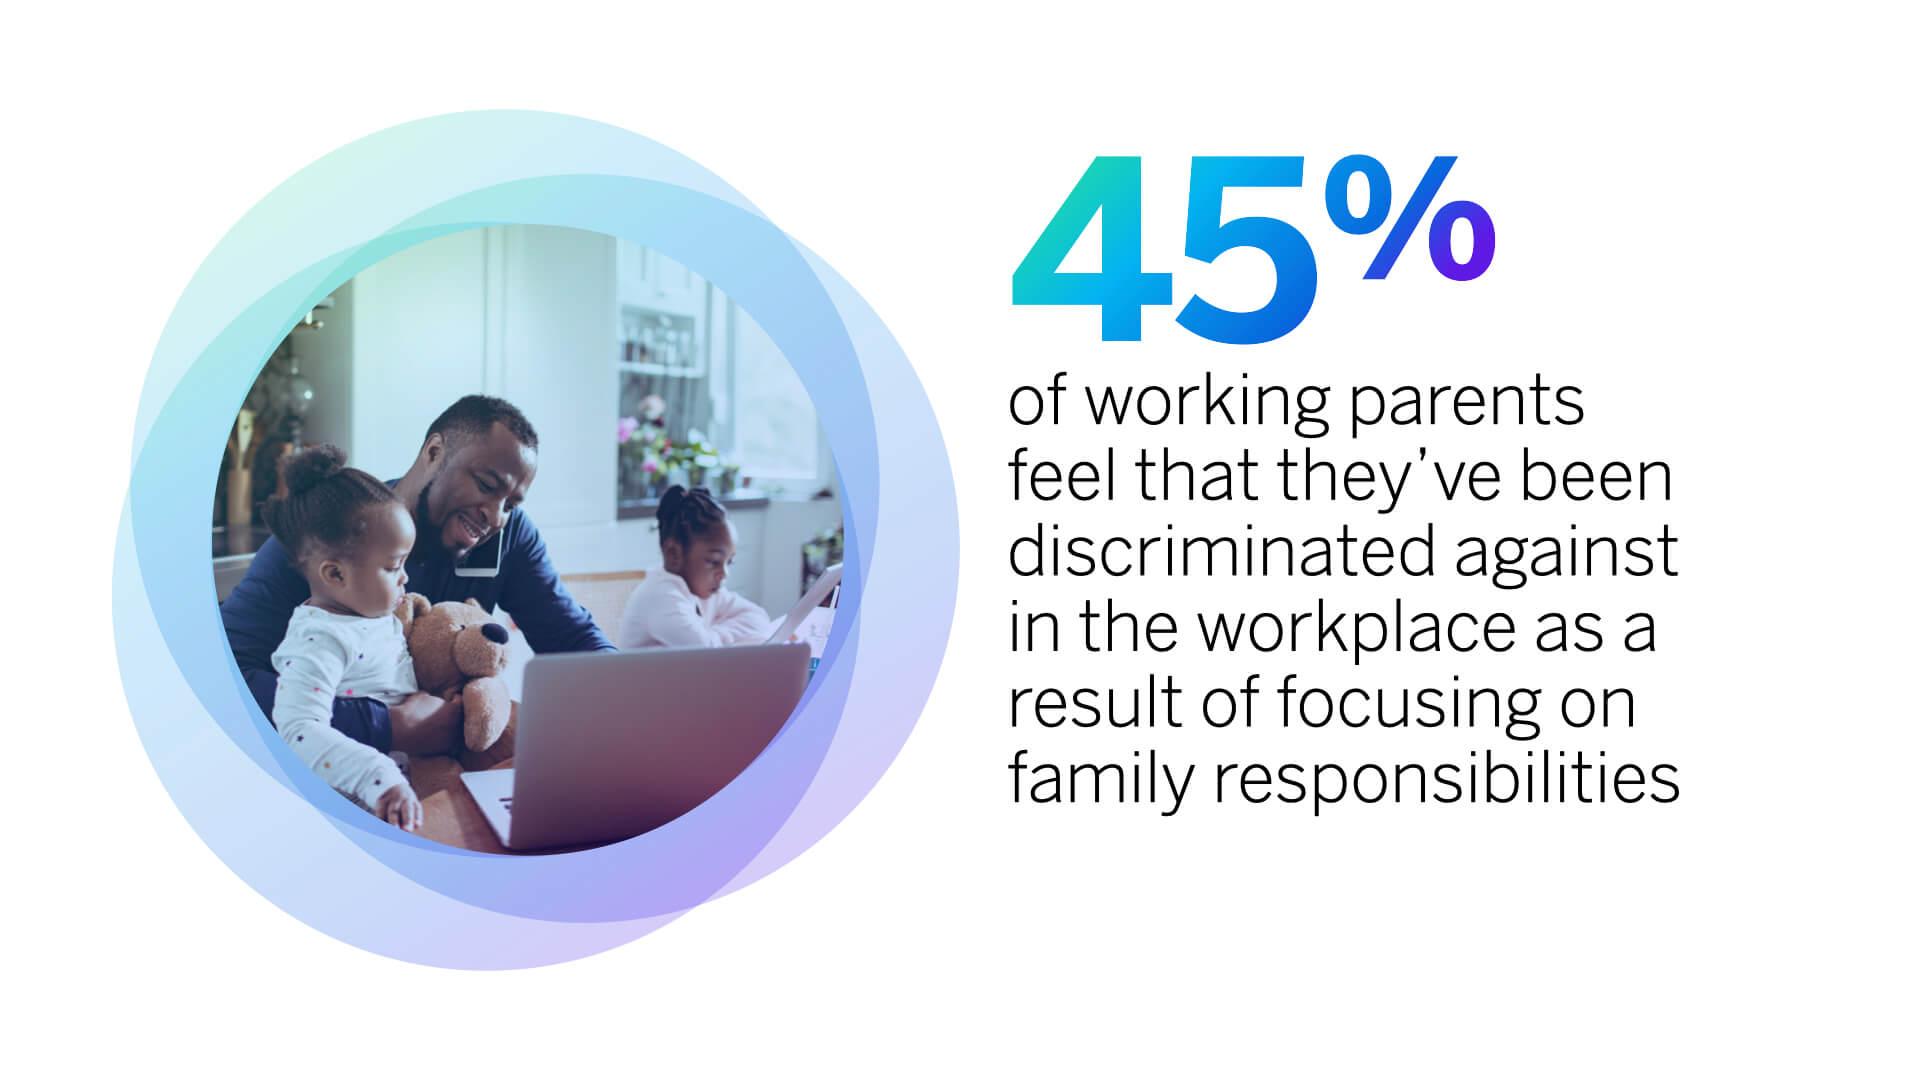 45% of working parents feel they've been discriminated against in the workplace.